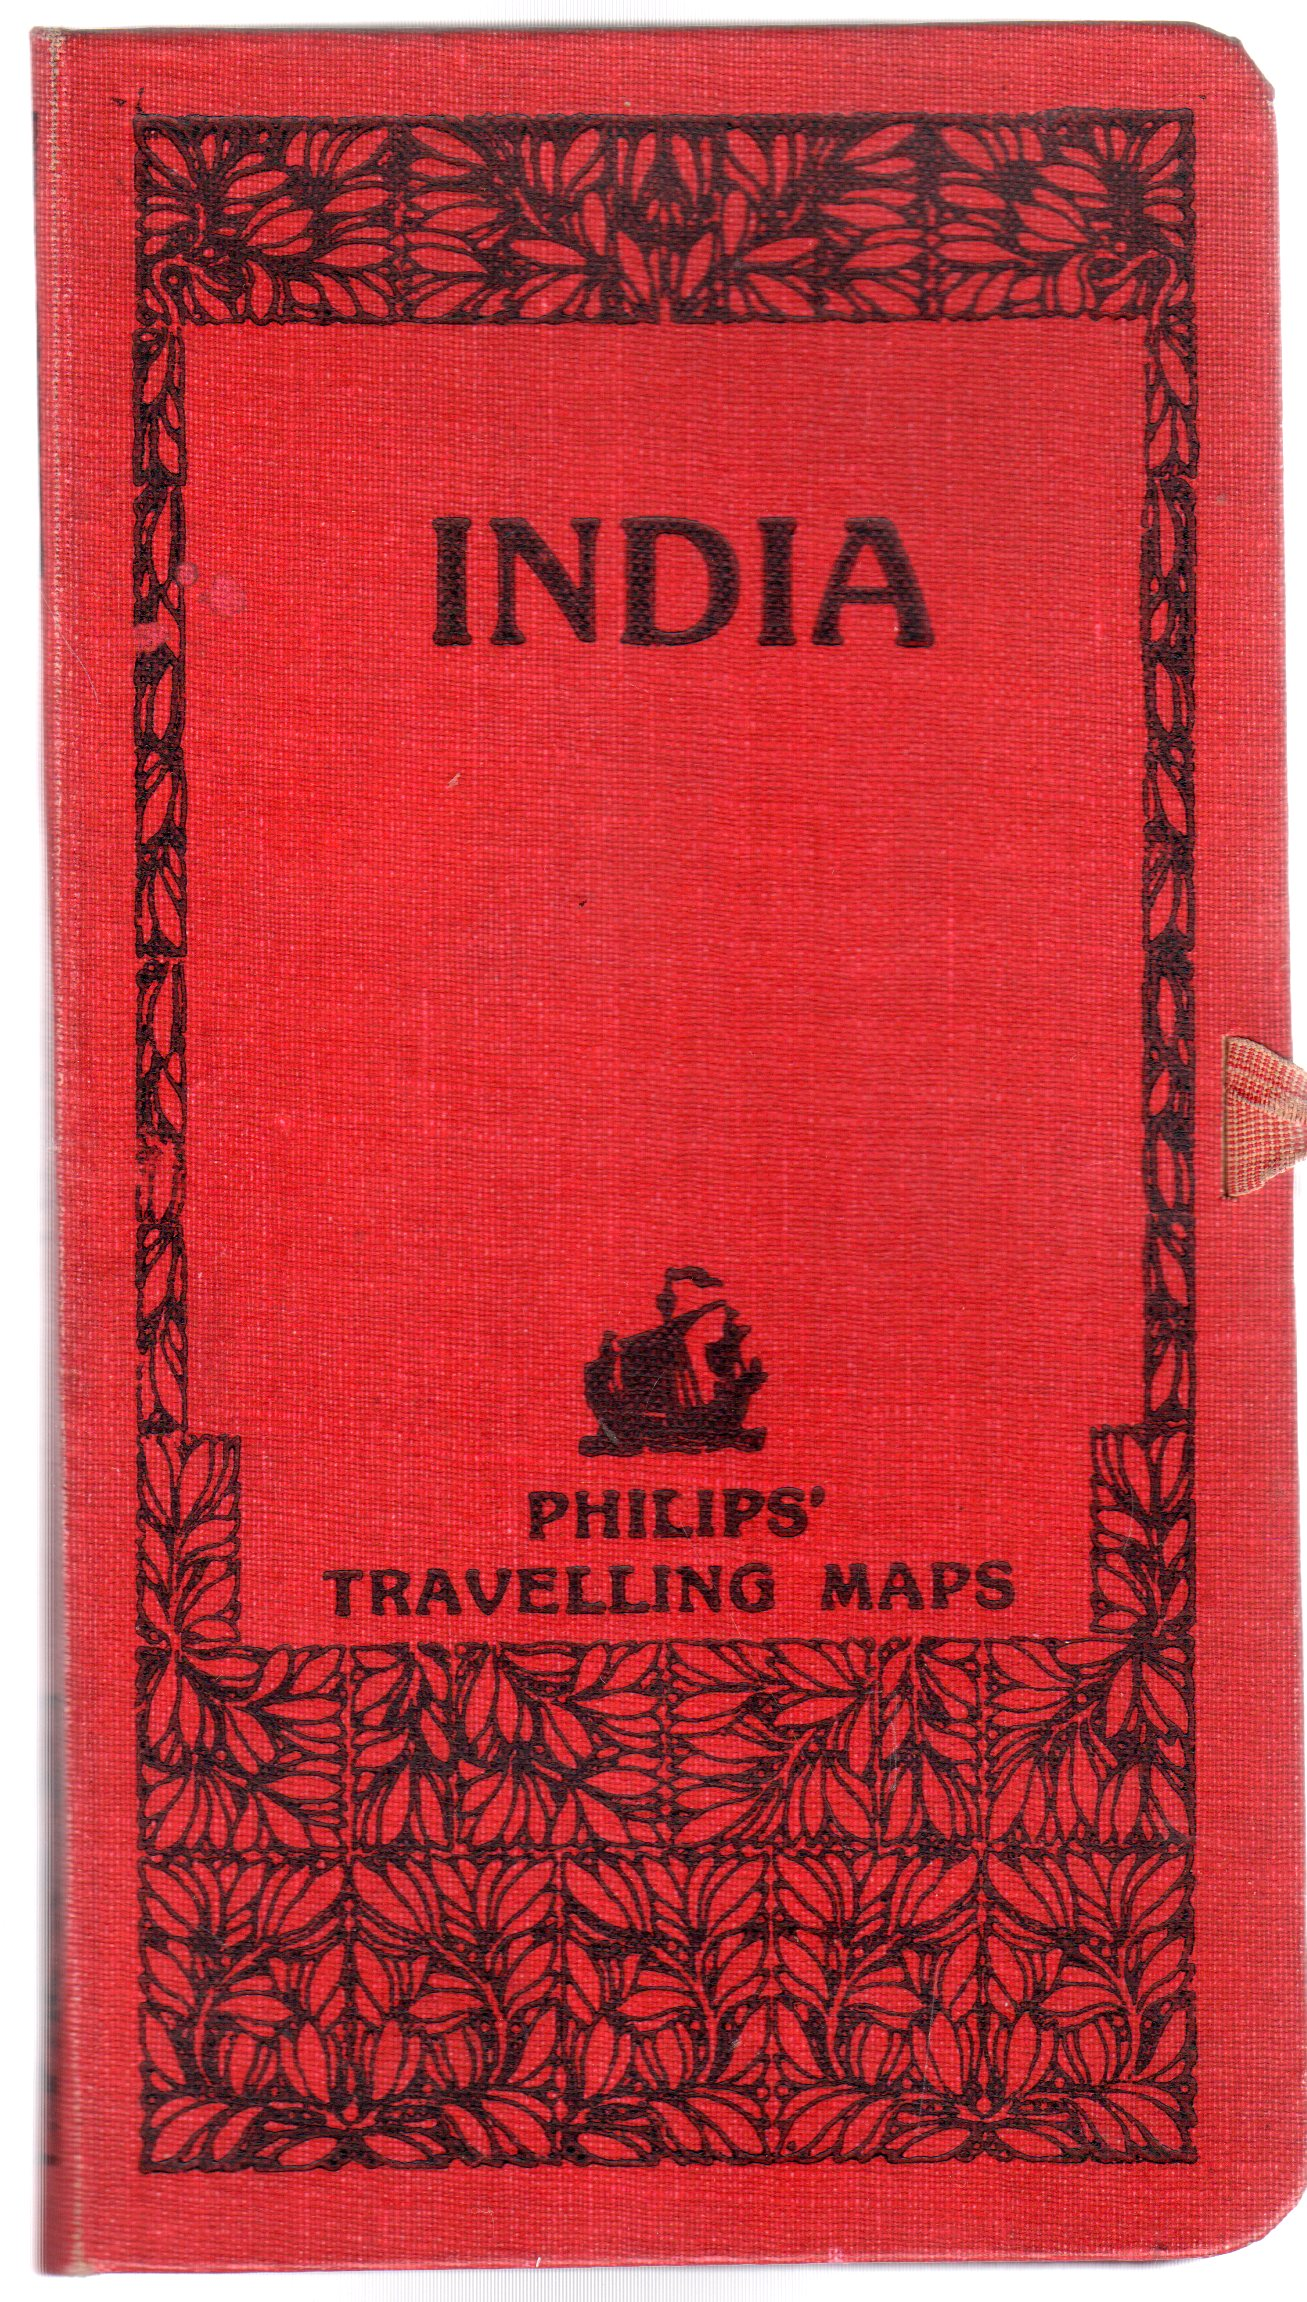 Image for India - Philips' Travelling Maps